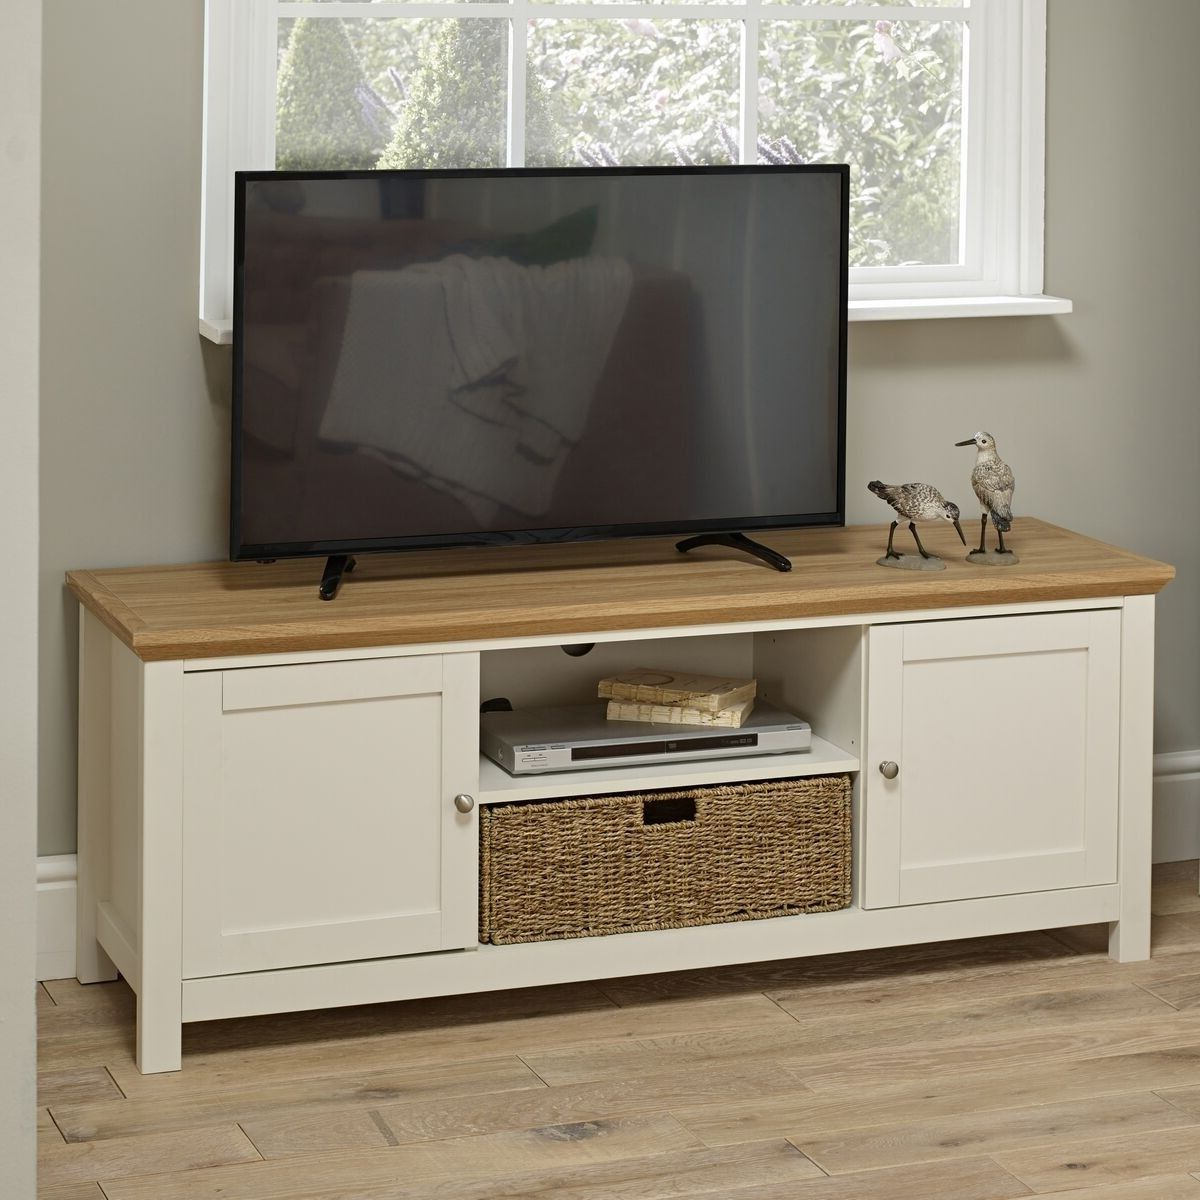 Cotswold Country Oak Tv Unit, Cream In 2020   Wooden Tv Within Cotswold Widescreen Tv Unit Stands (View 1 of 20)